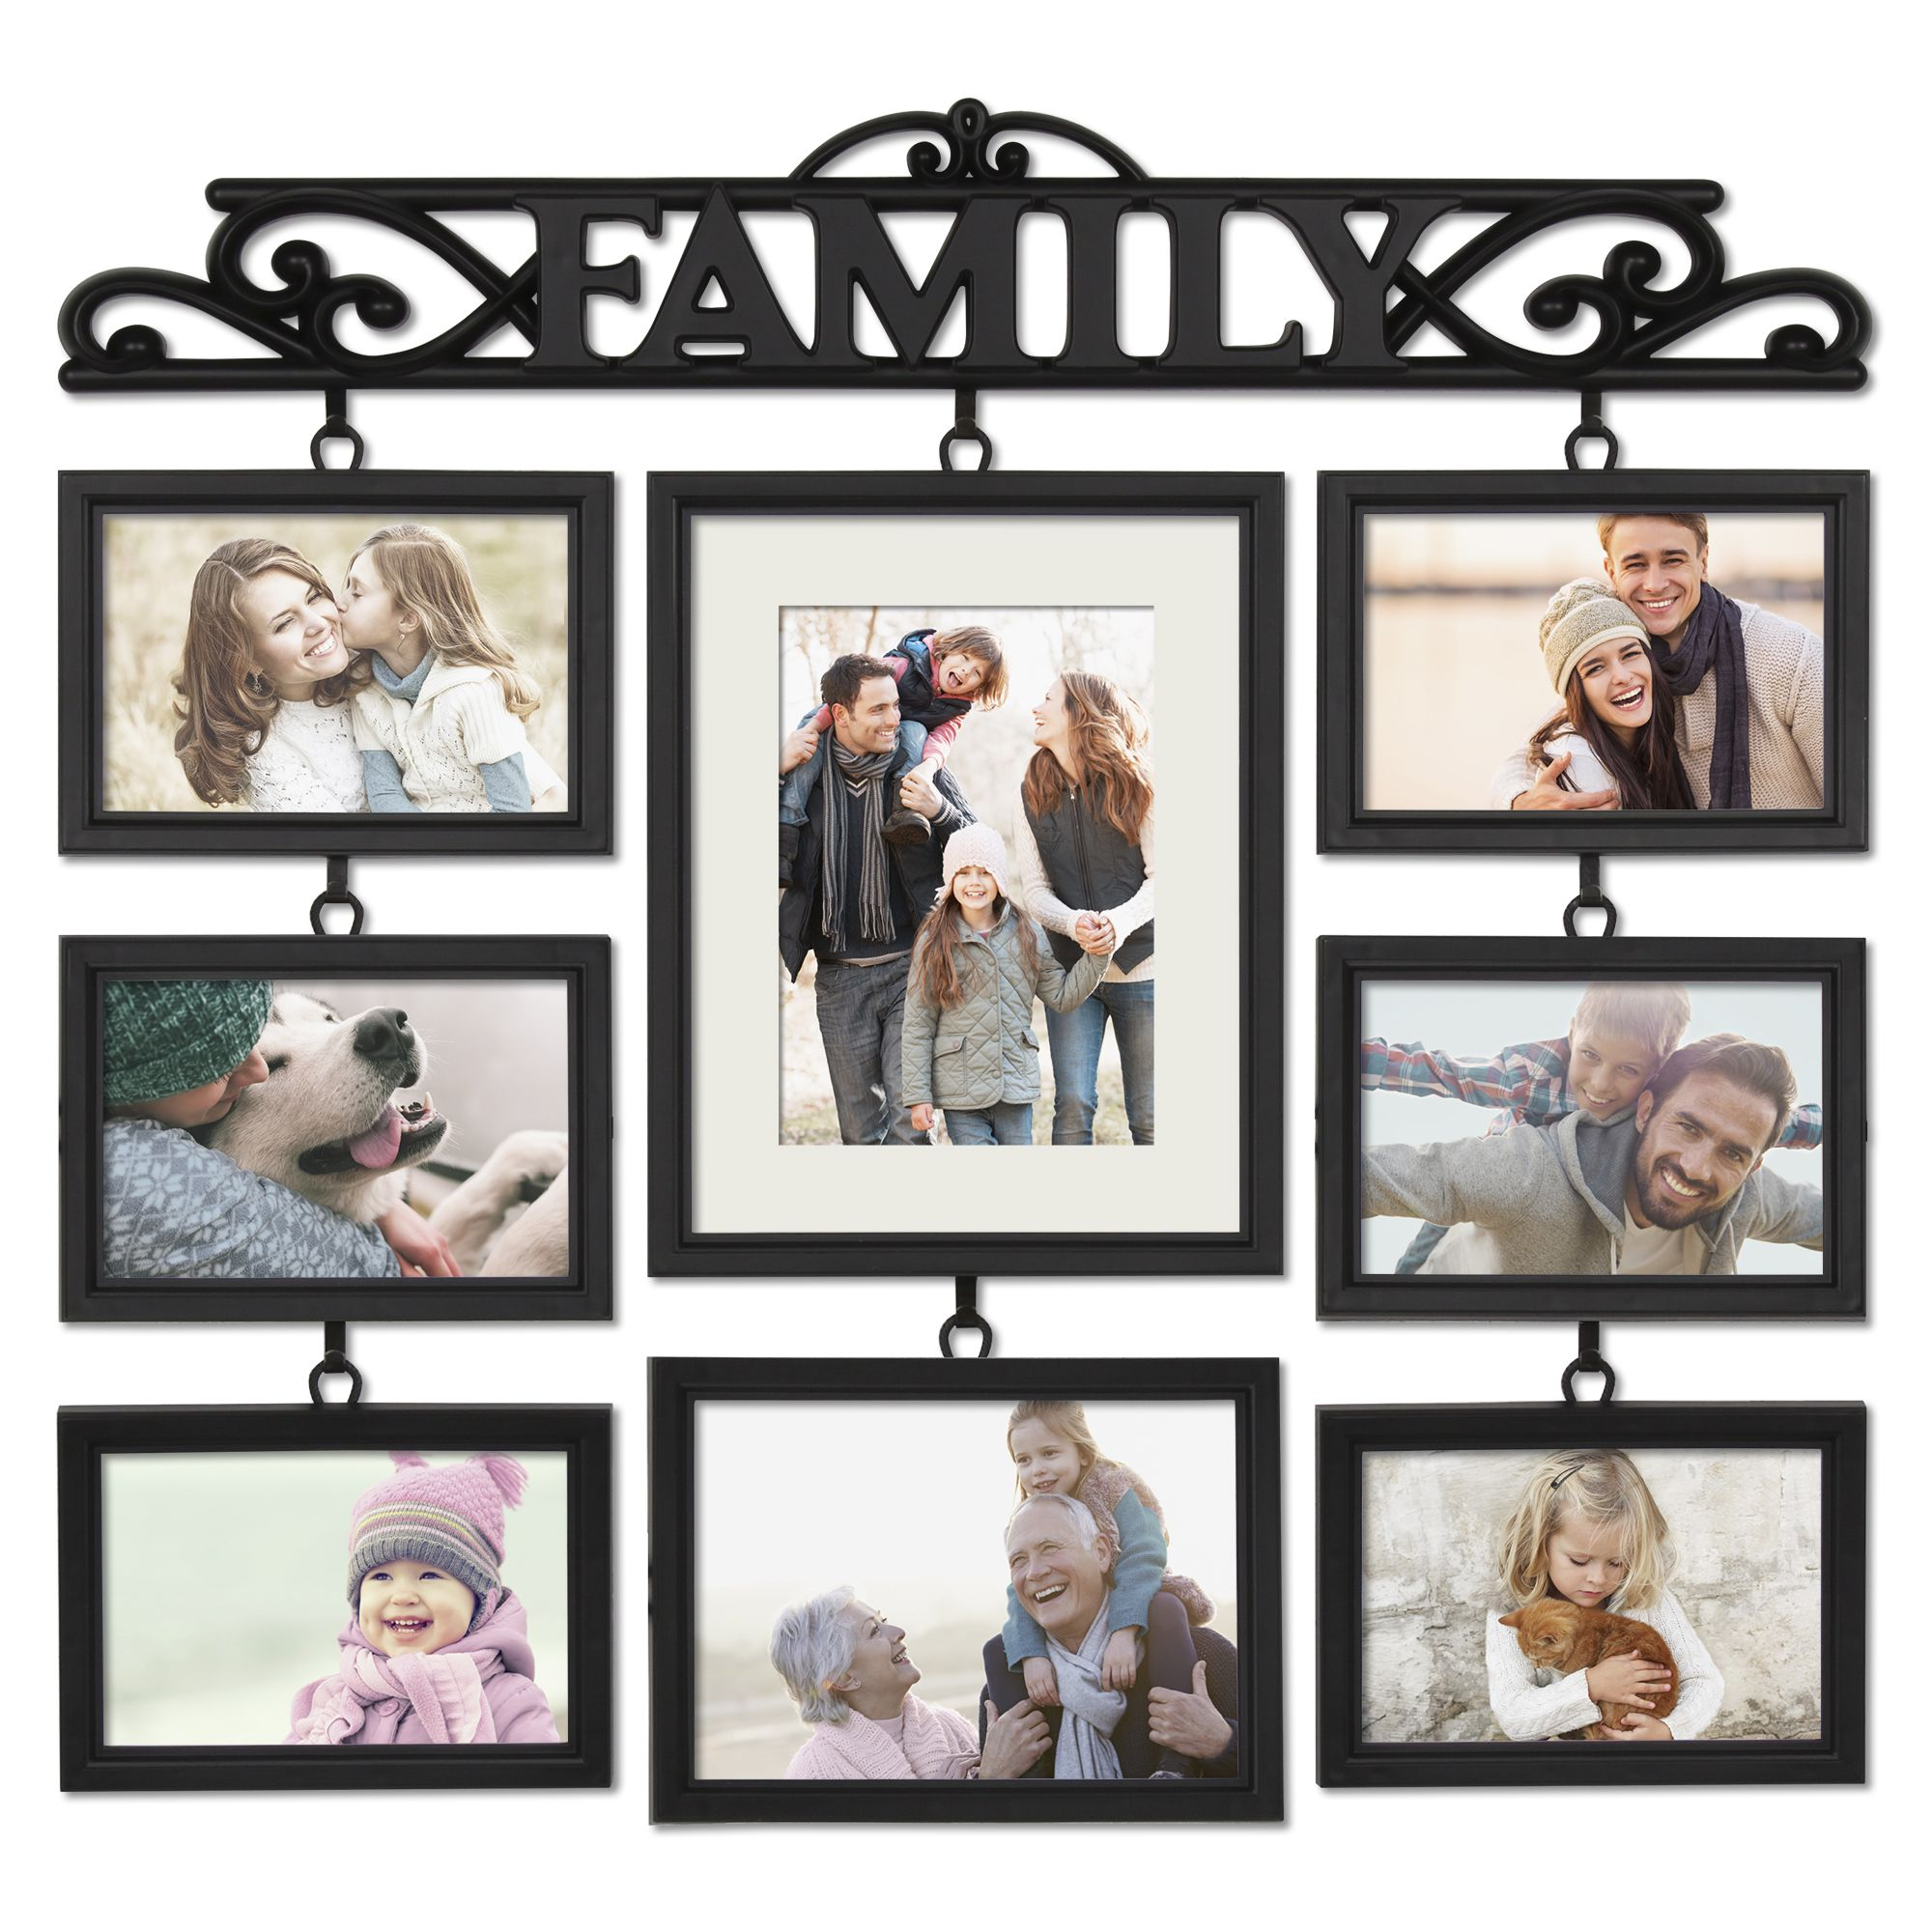 Mainstays Black 8 Opening Family Collage Photo Frame Walmart Com